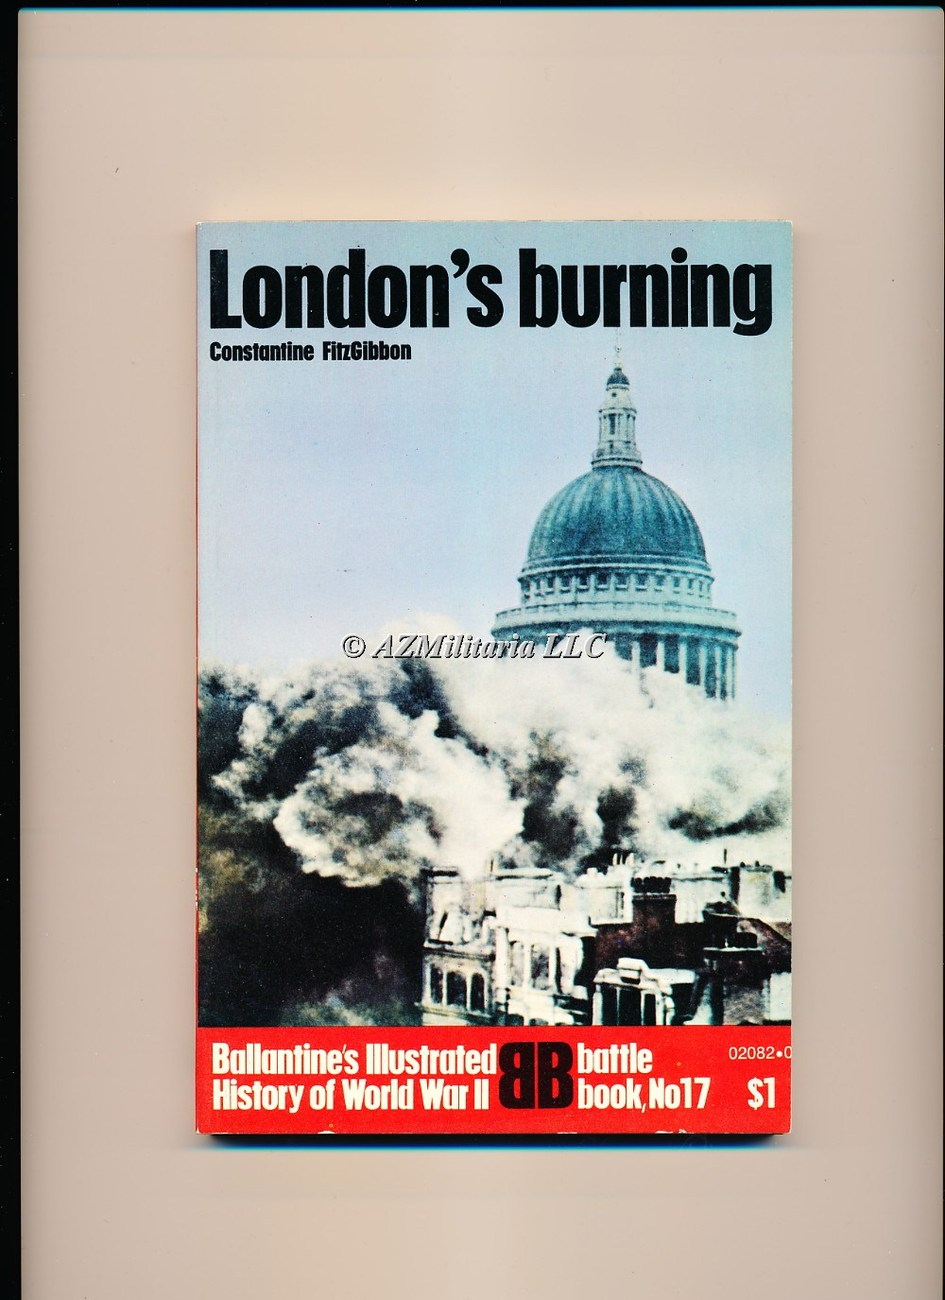 London's Burning (Battle Book No 17)